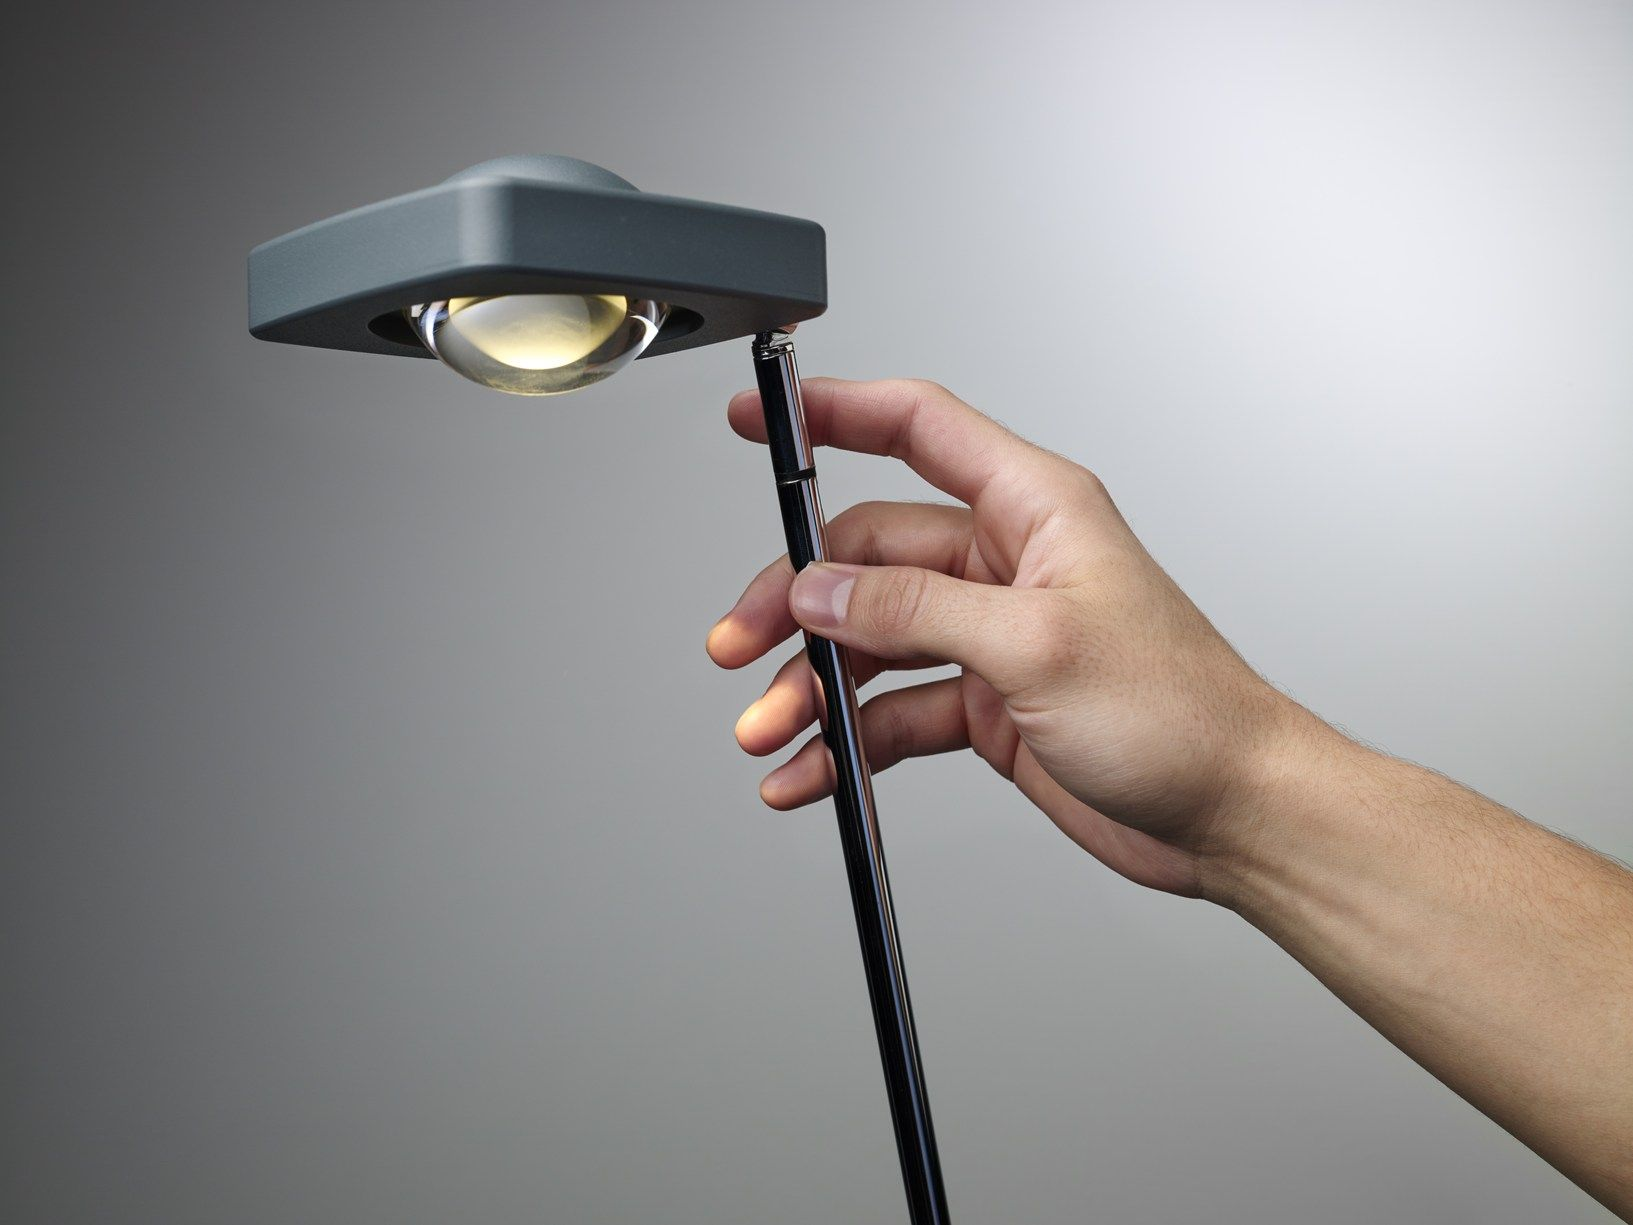 Oligo Lampen Kelveen Lamp By Oligo 台灯 Desk Lighting Lamp Design